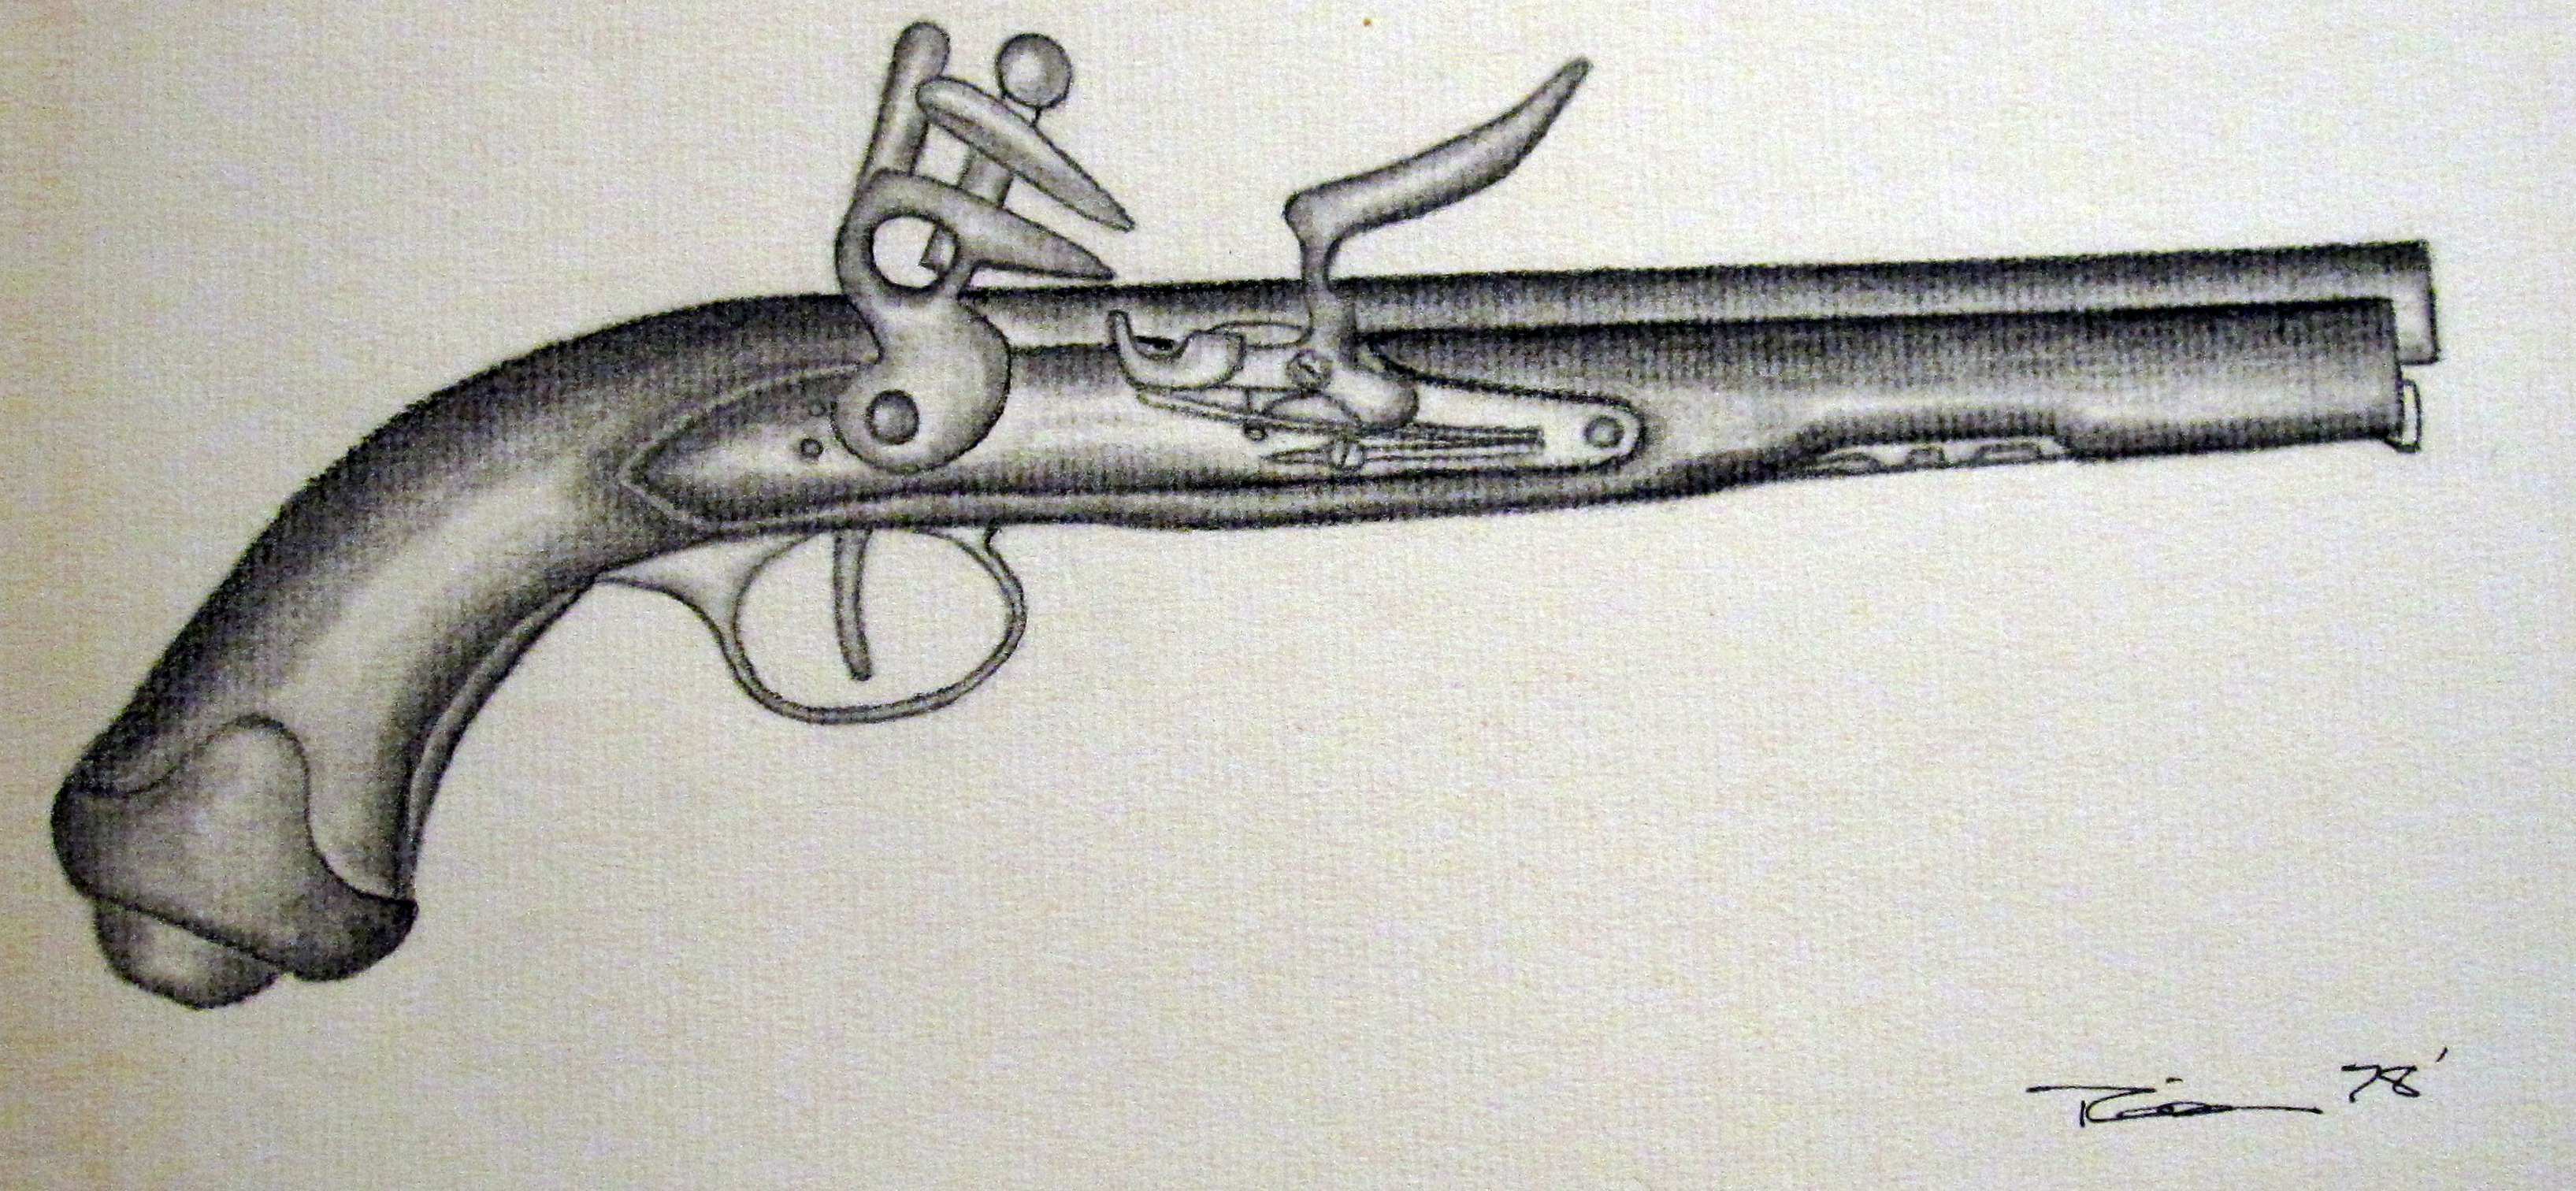 I drew this cap an ball pistol about 30 years ago, I was